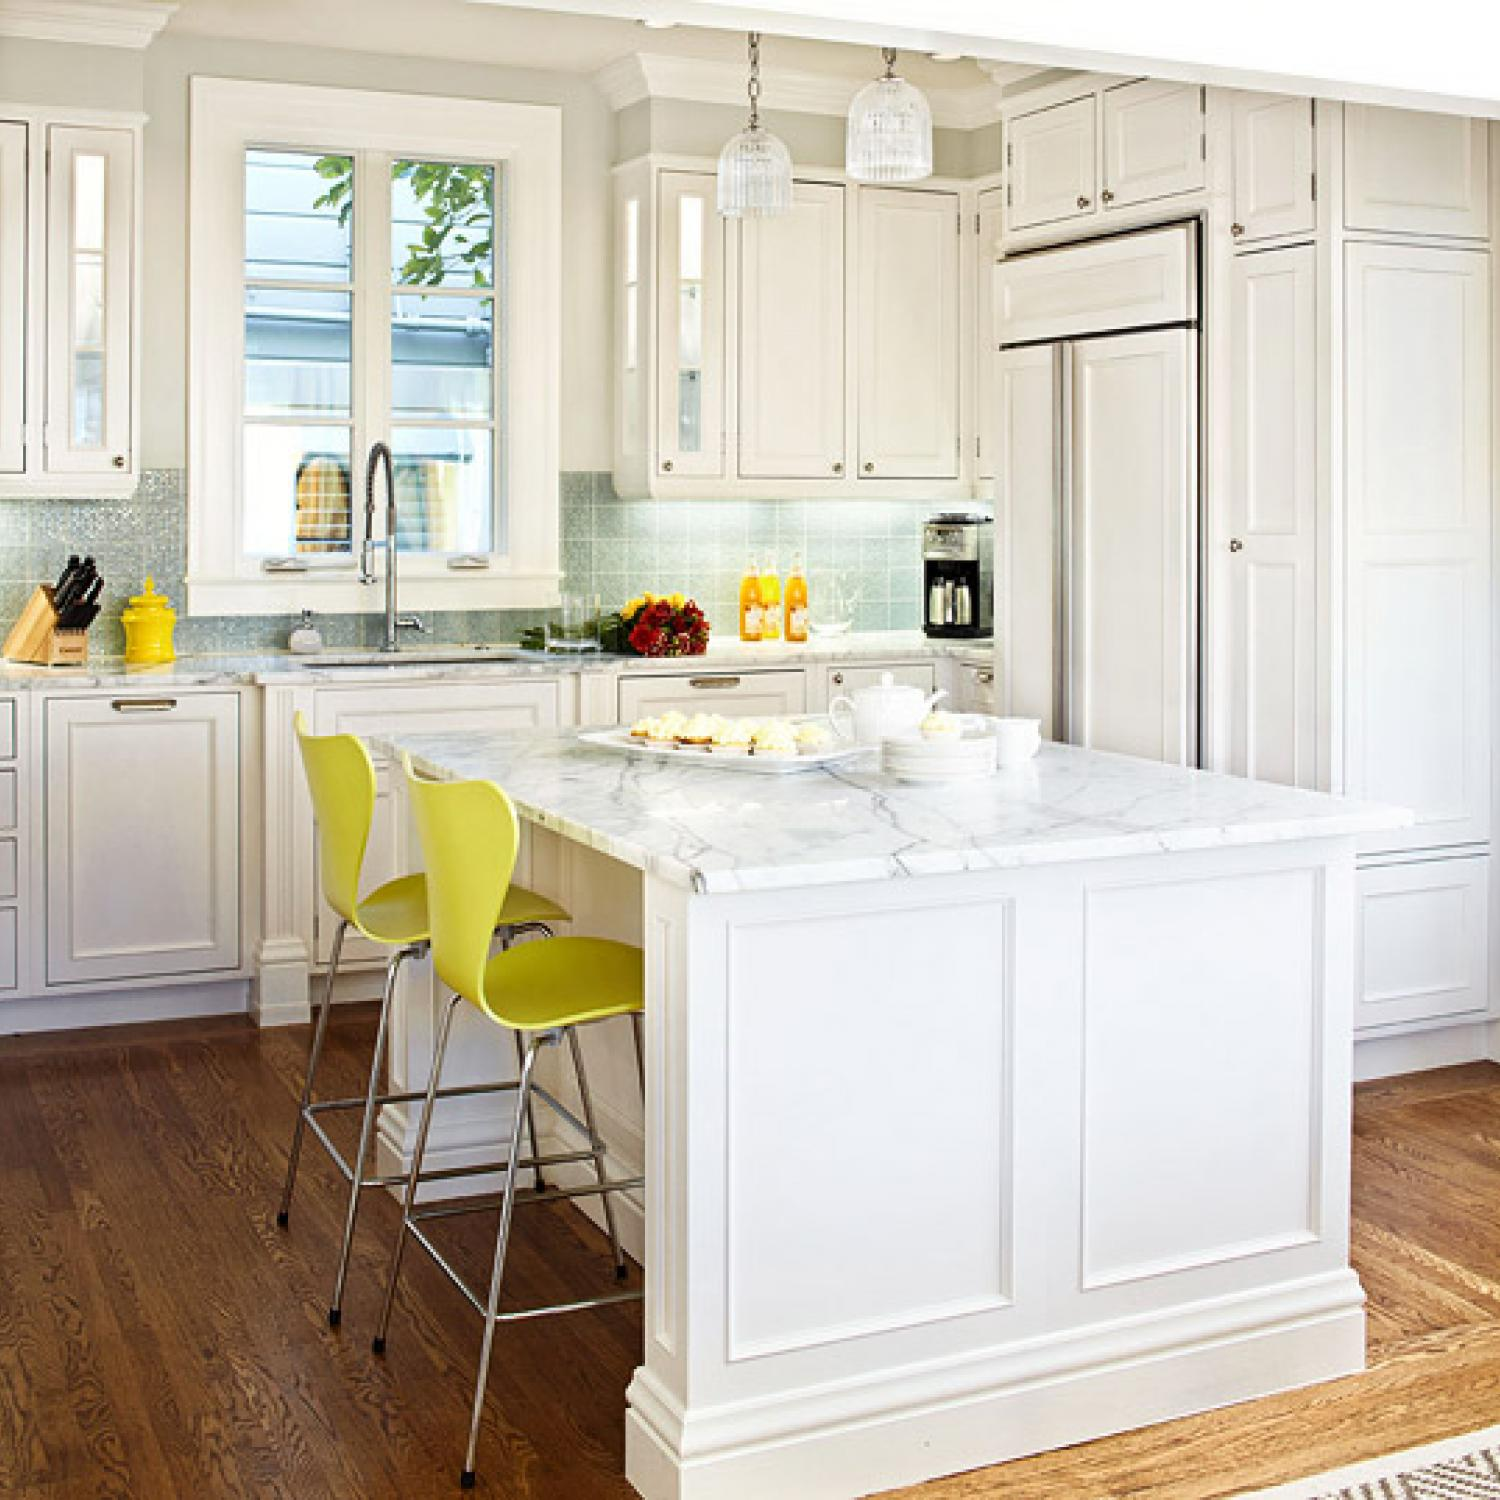 Design ideas for white kitchens traditional home for Home decor ideas for kitchen